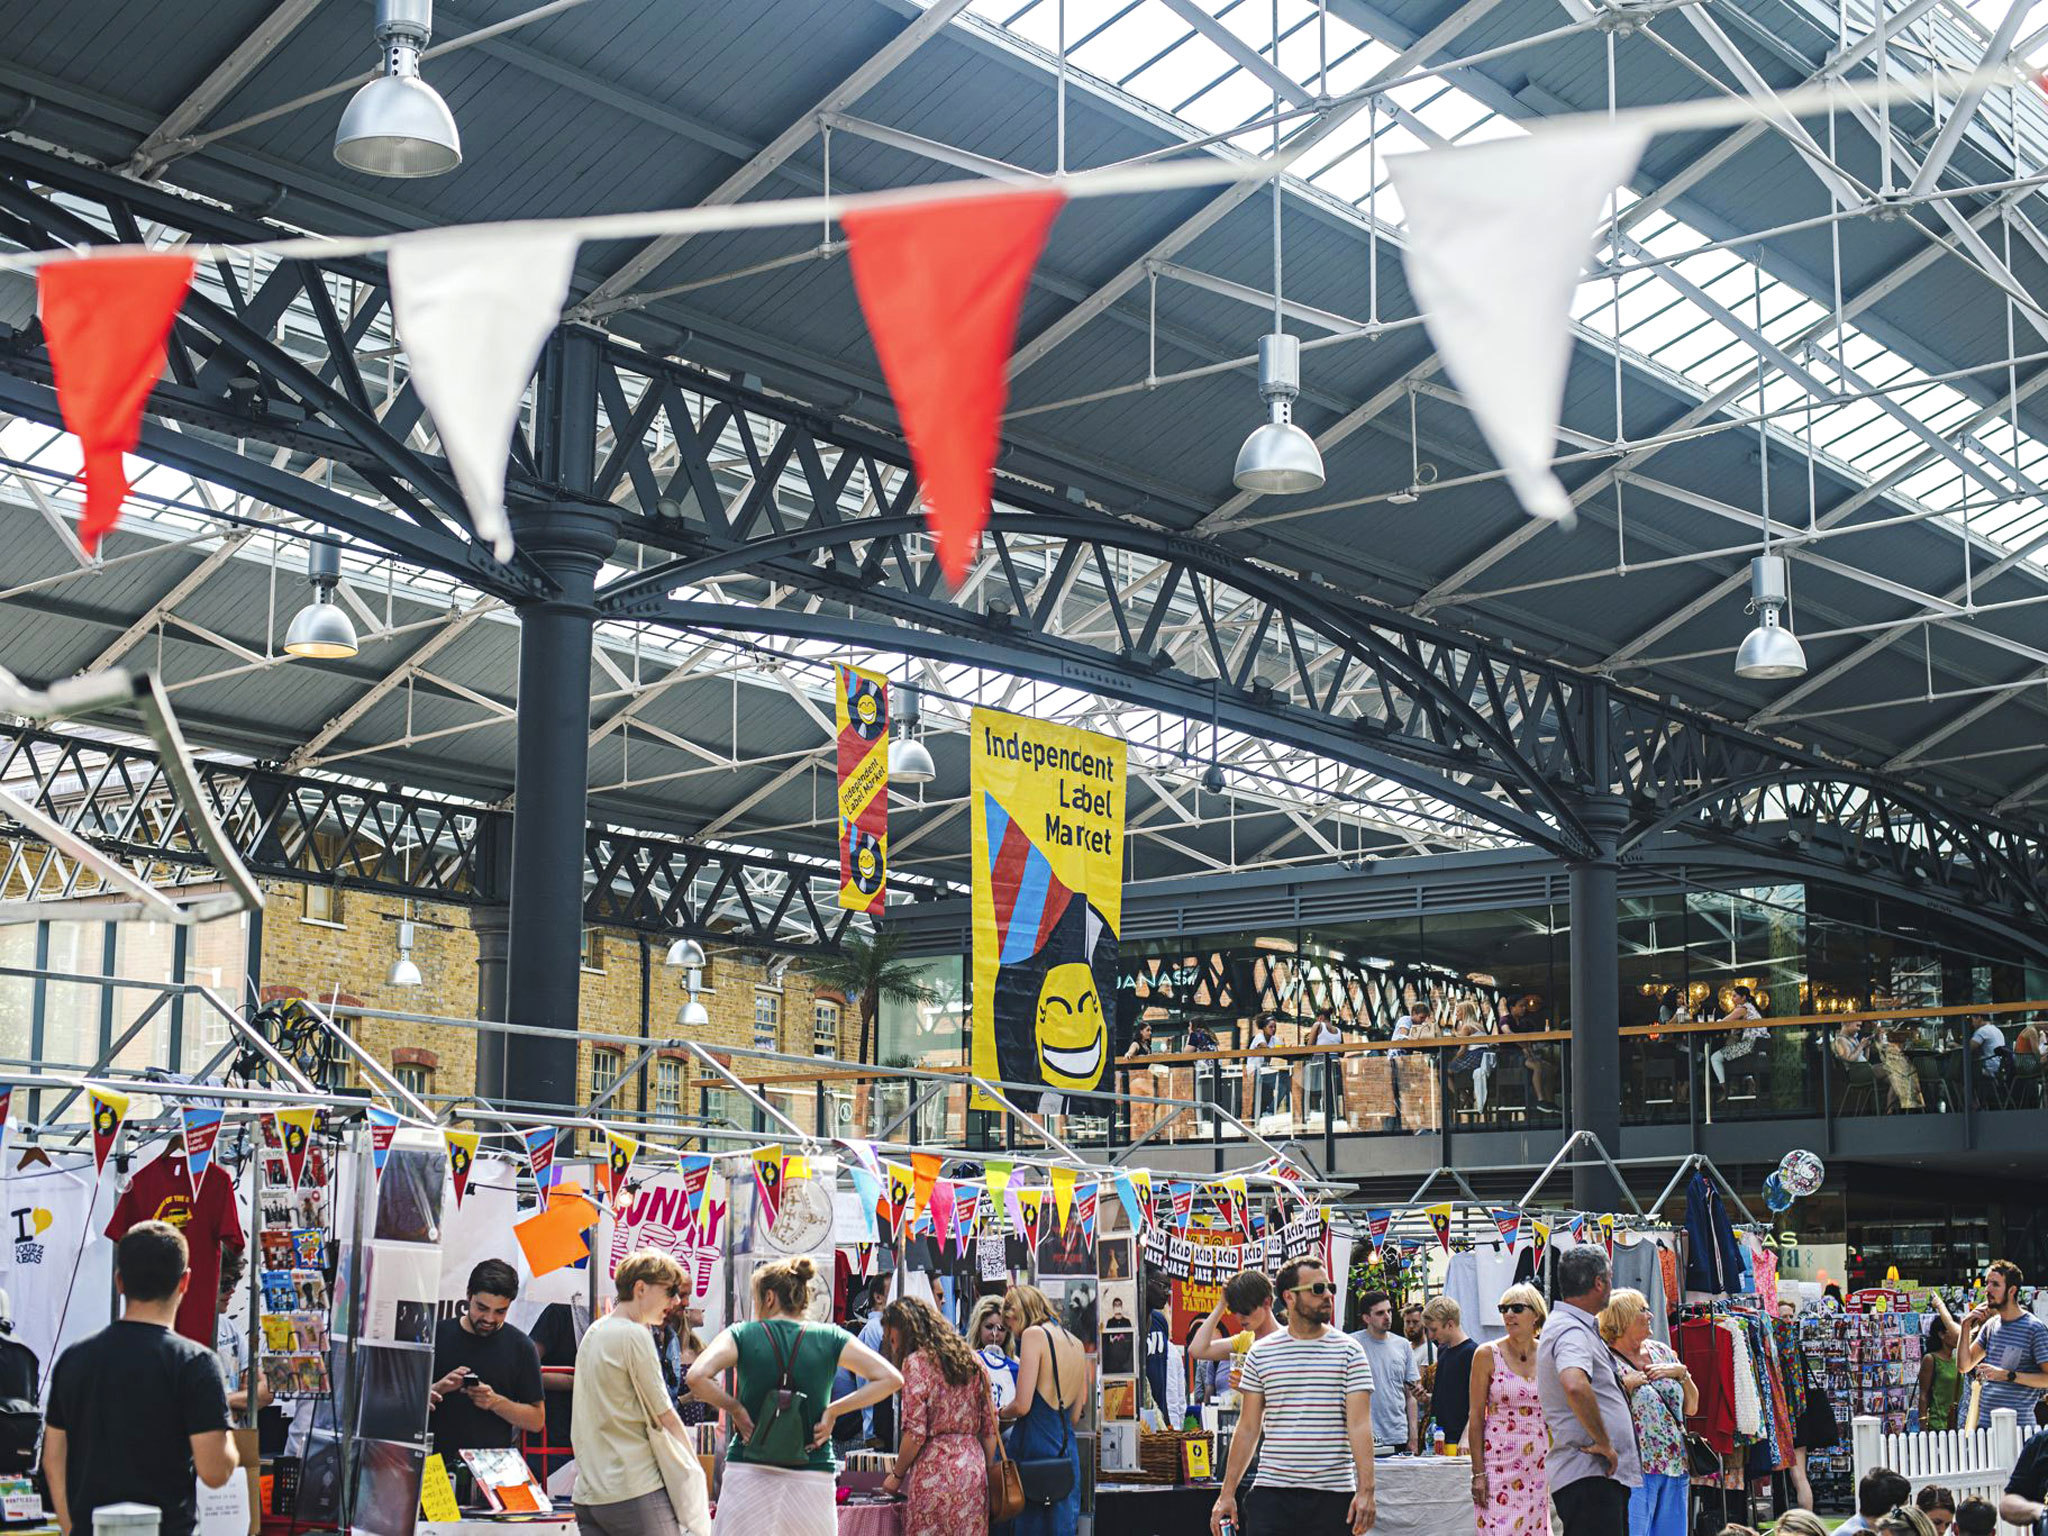 Independent Label Market at Old Spitalfields Market